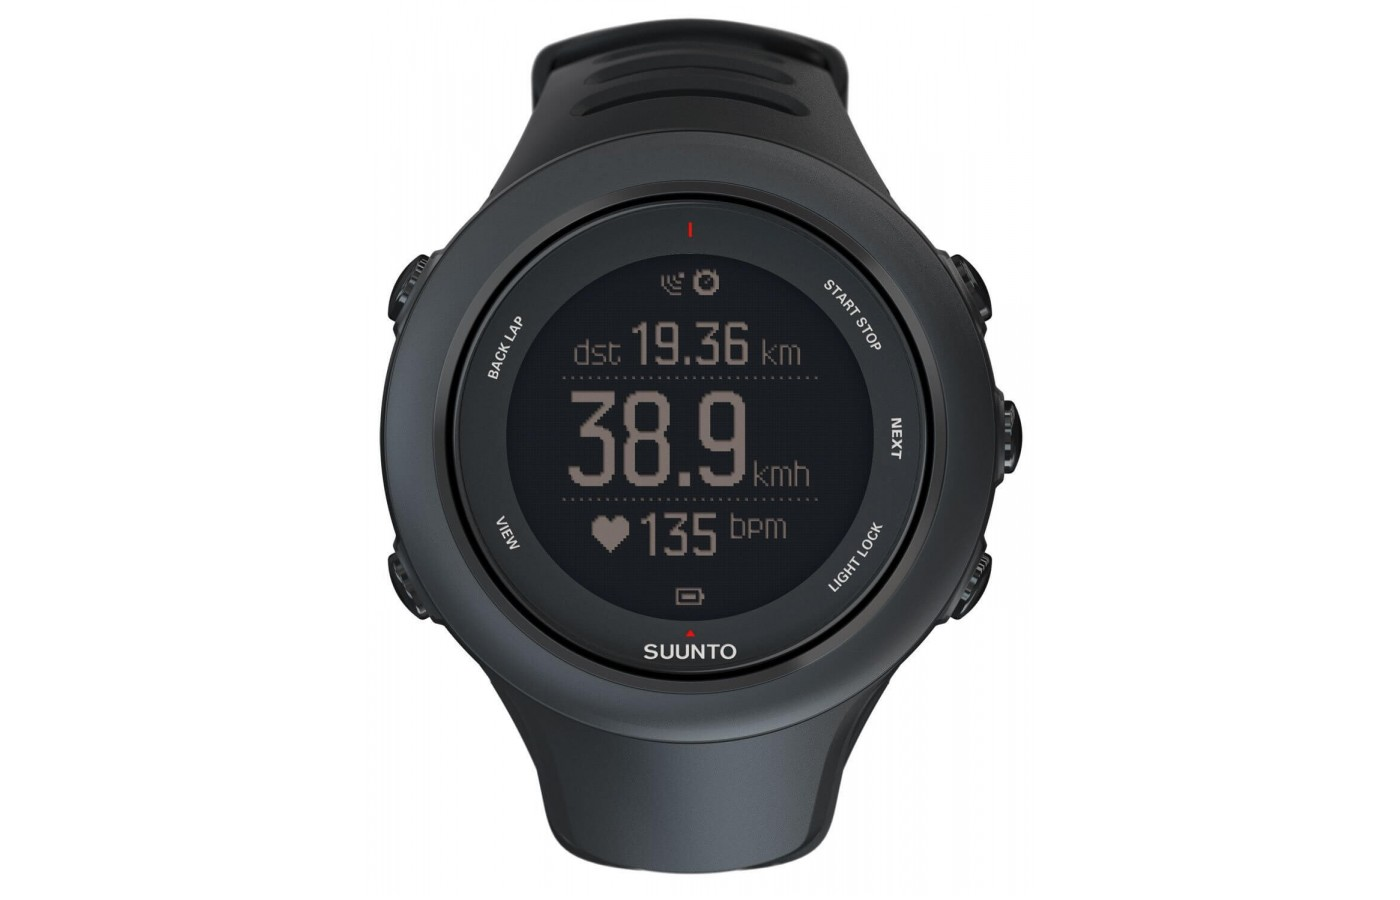 The Suunto Ambit3 Sport is GPS enabled